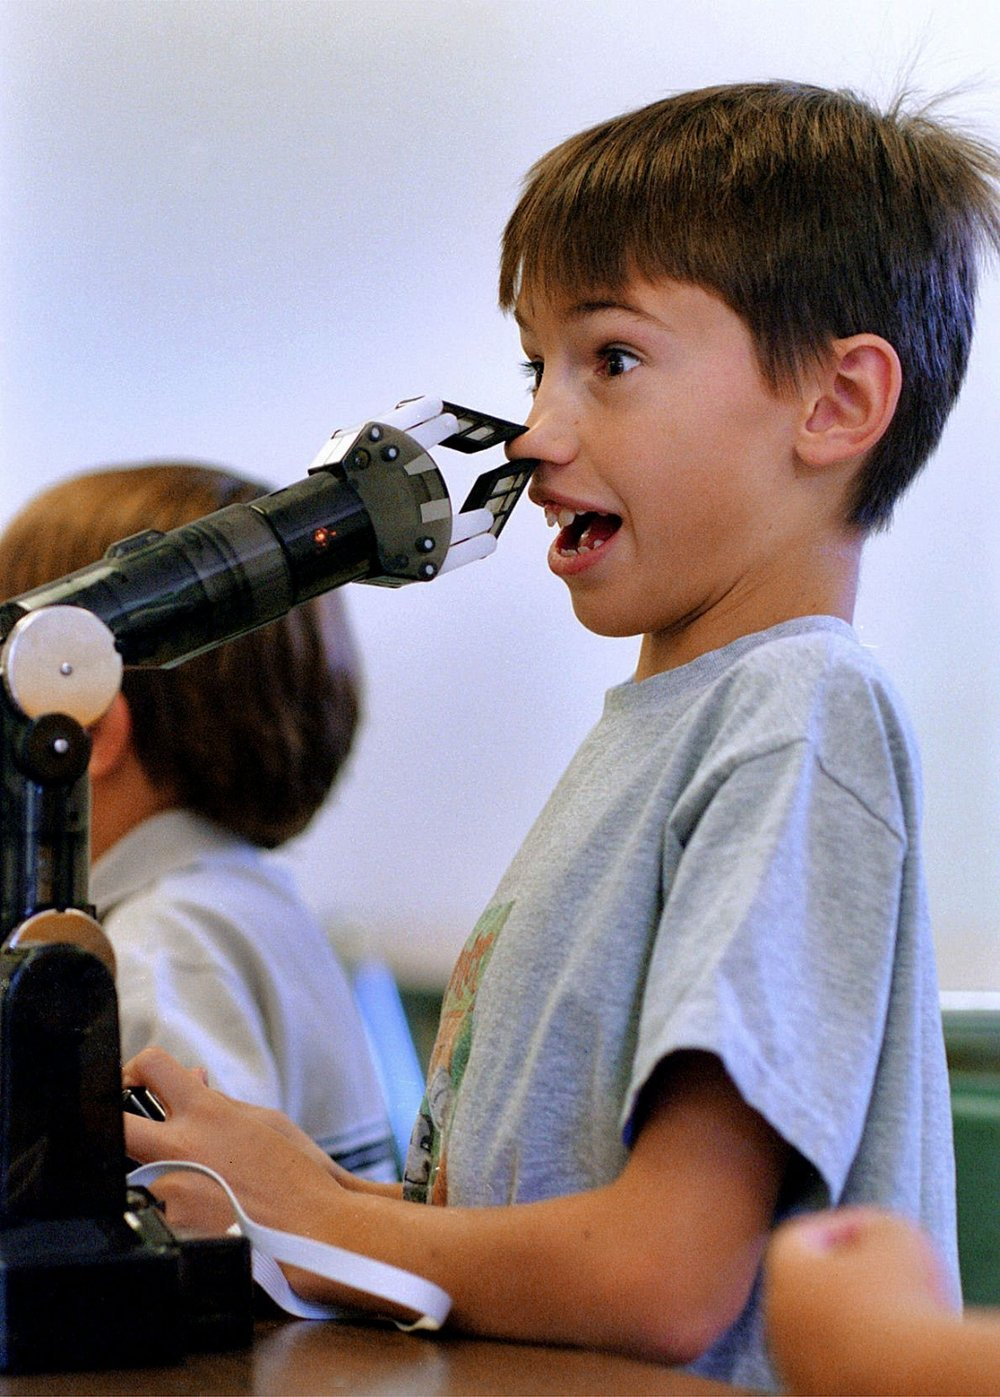 "Jason Kaye 9, pinches his nose in the grip of a mechanical robotic arm at the R.G. Smith Clubhouse in Folsom on Thursday July 25, 2002. ""Mad Scientist"" Jason Turner put on a science class themed ""Machine Mania"" and featured simple machines."